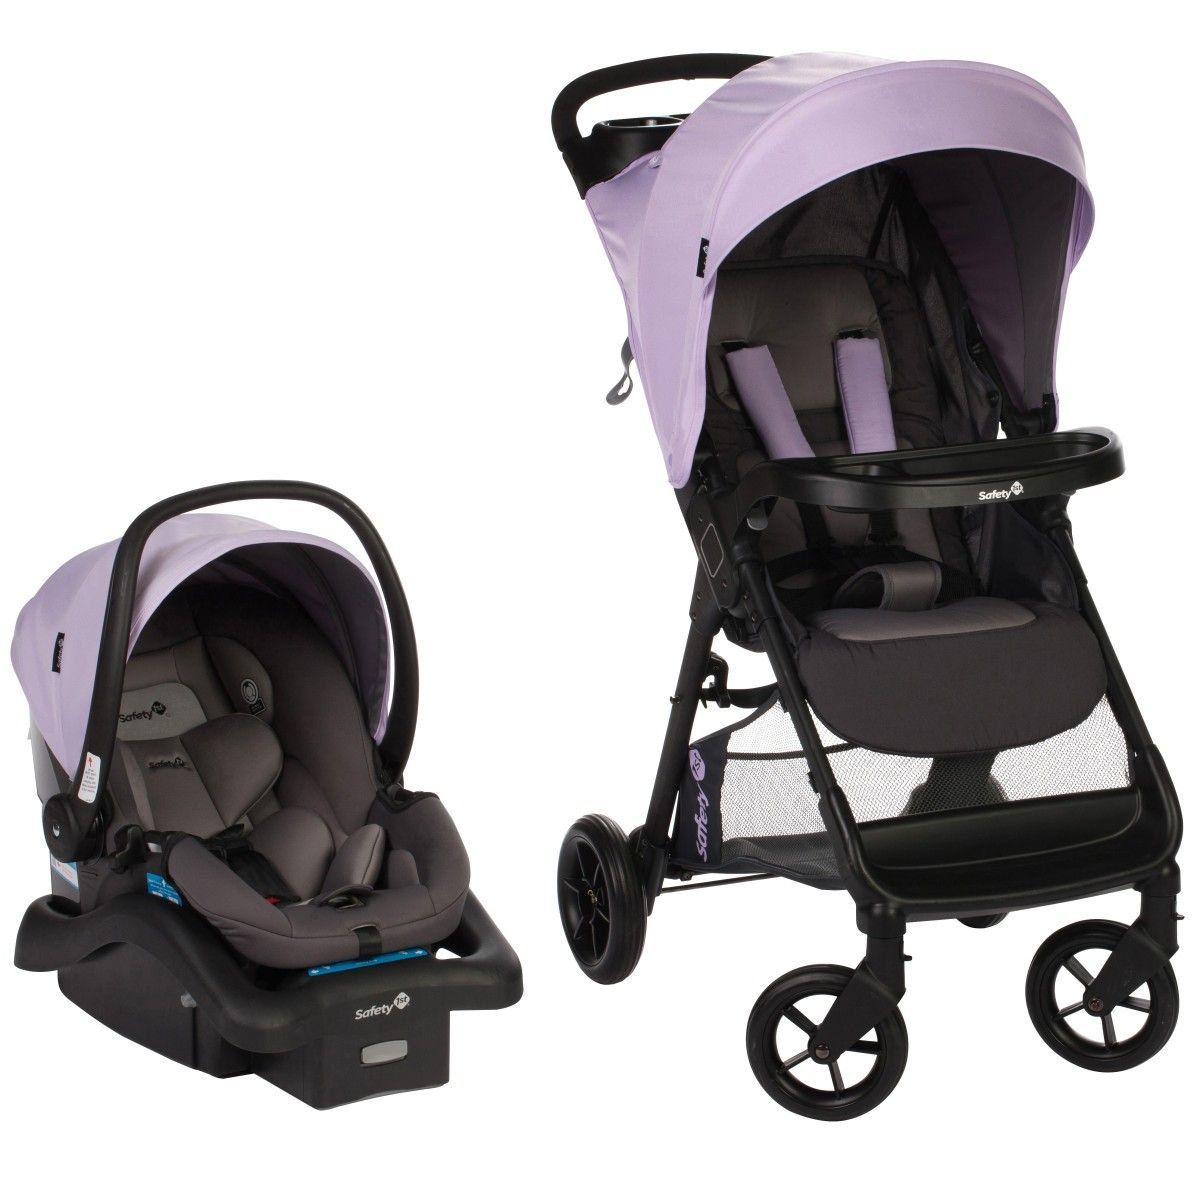 Smooth Ride Travel System Wisteria Lane Travel system